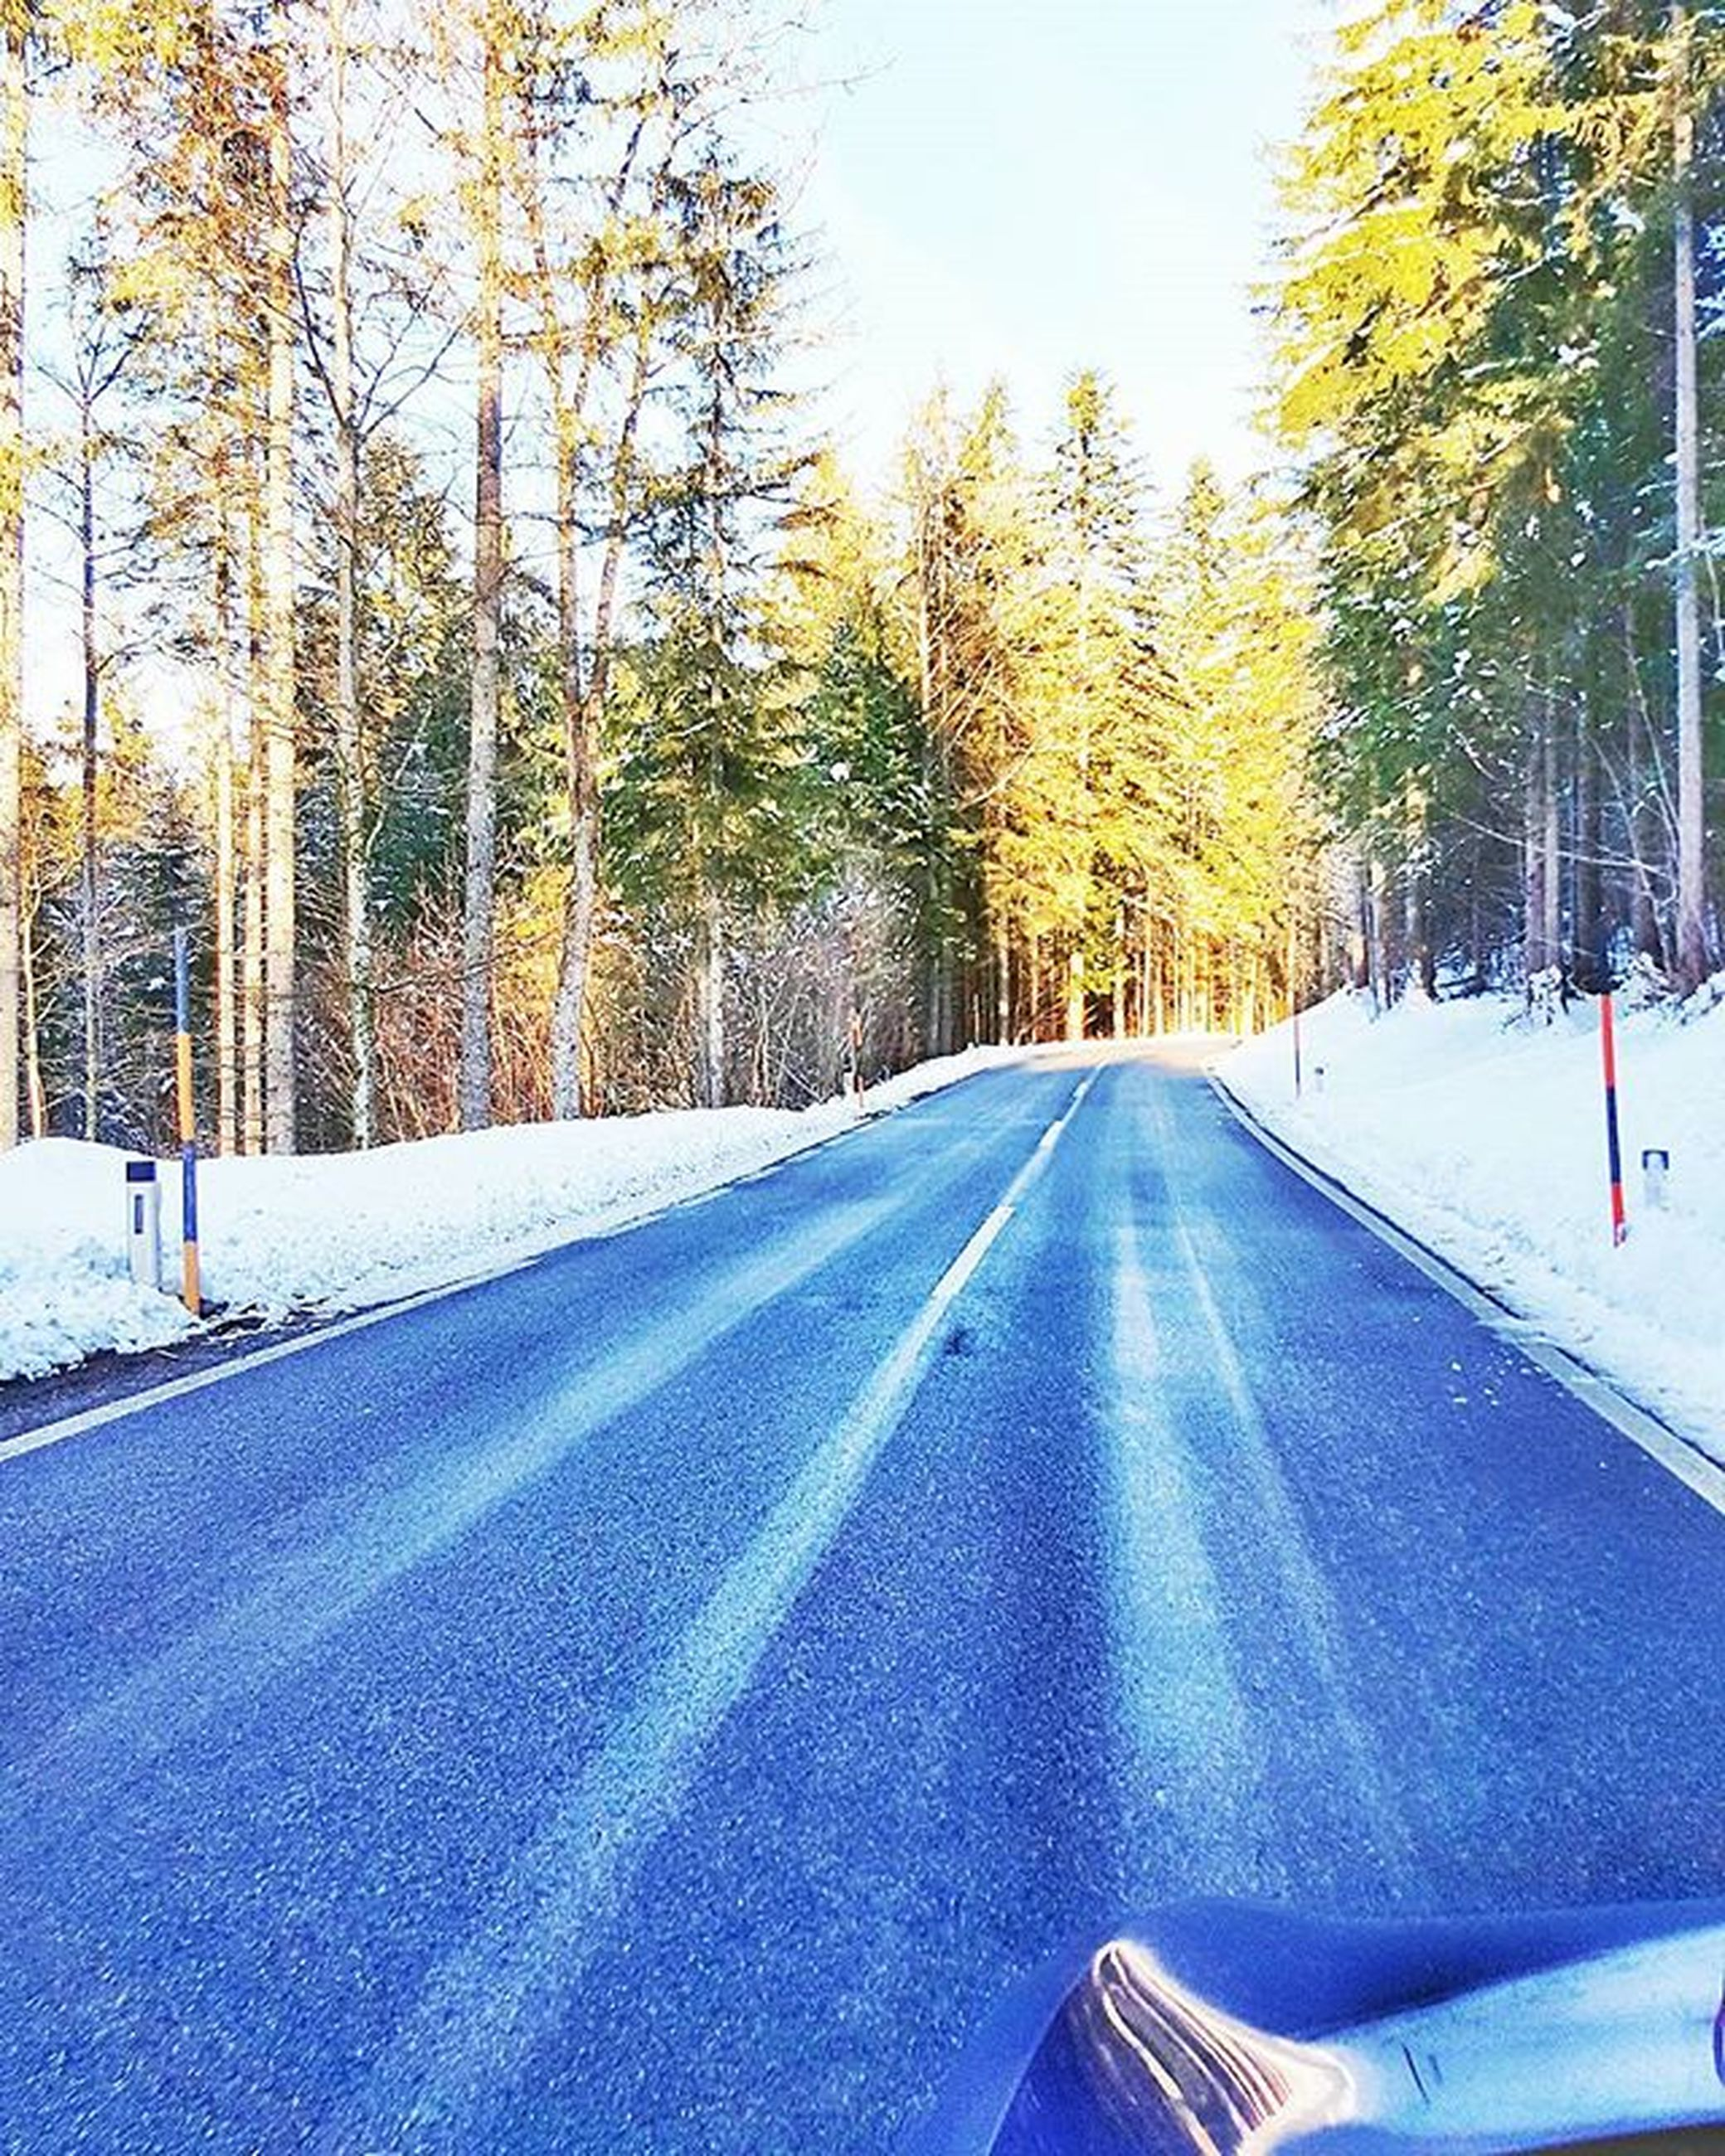 the way forward, tree, transportation, road, diminishing perspective, vanishing point, snow, winter, season, cold temperature, road marking, nature, treelined, tranquility, country road, day, empty road, tranquil scene, street, outdoors